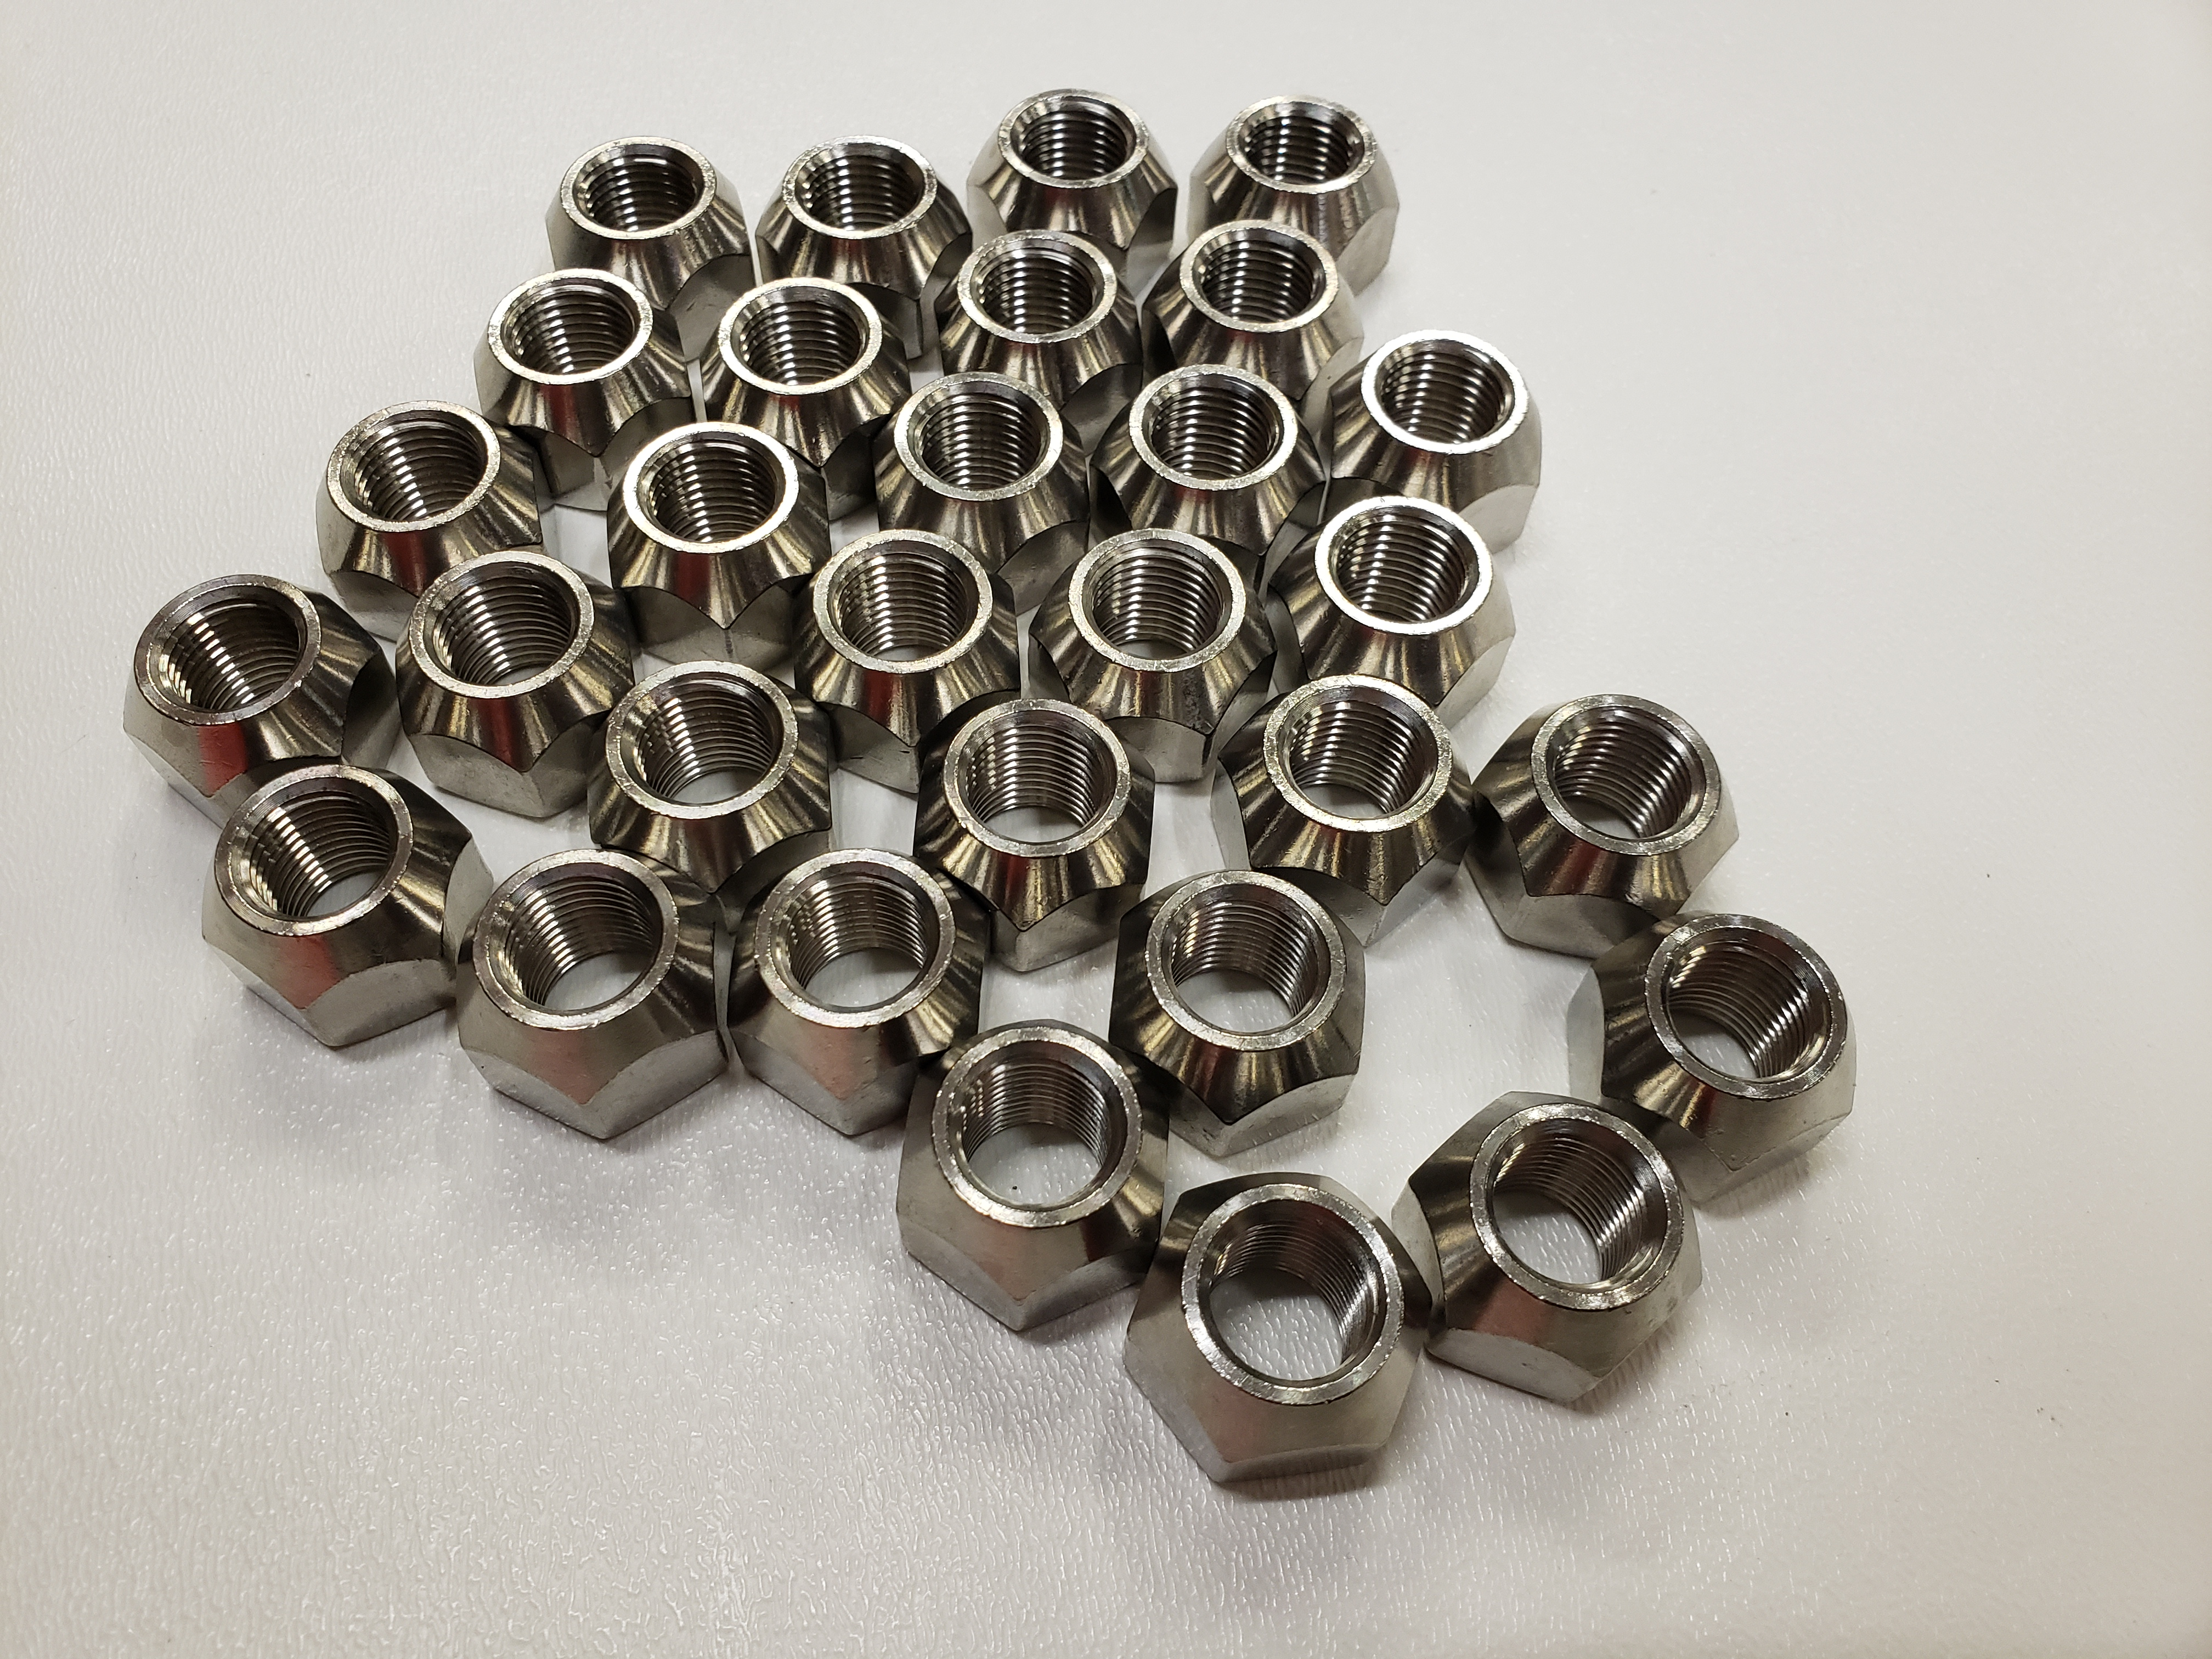 Pack Solid 304 Stainless Steel 1//2-20 Lug Nuts For Trailer Wheel Twenty 20